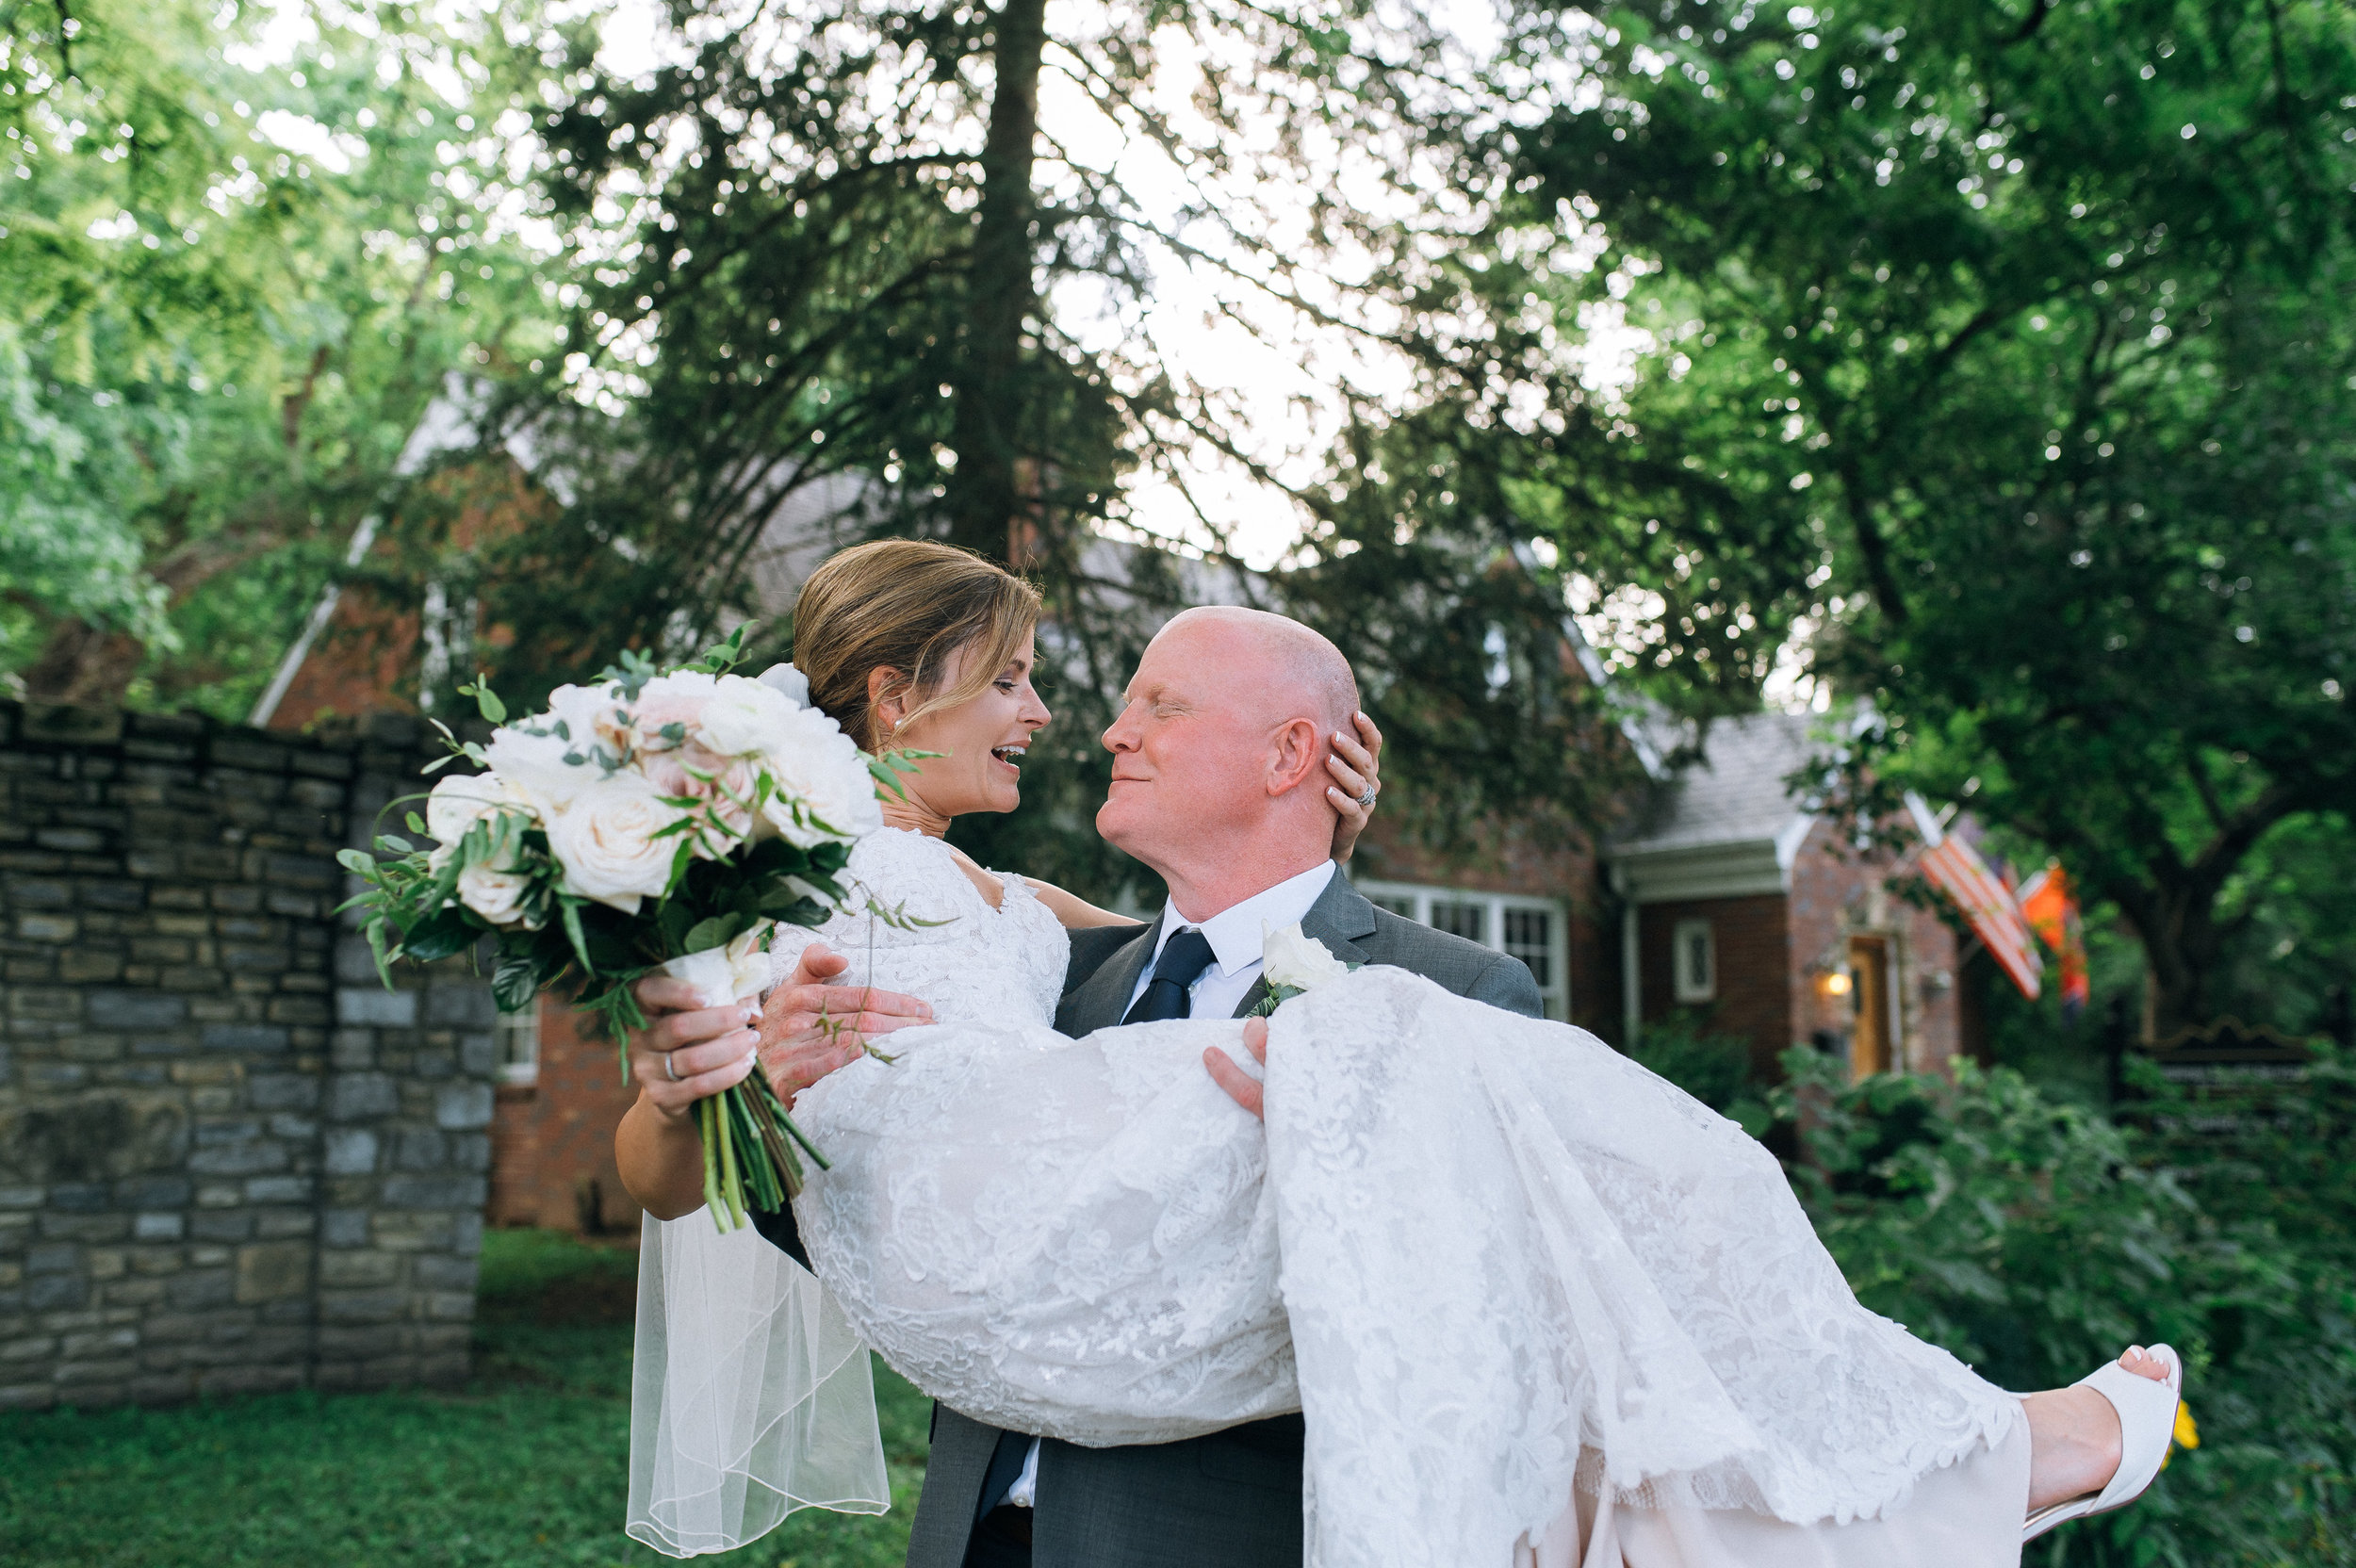 Molly + Vince Nashville Wedding - Details Nashville